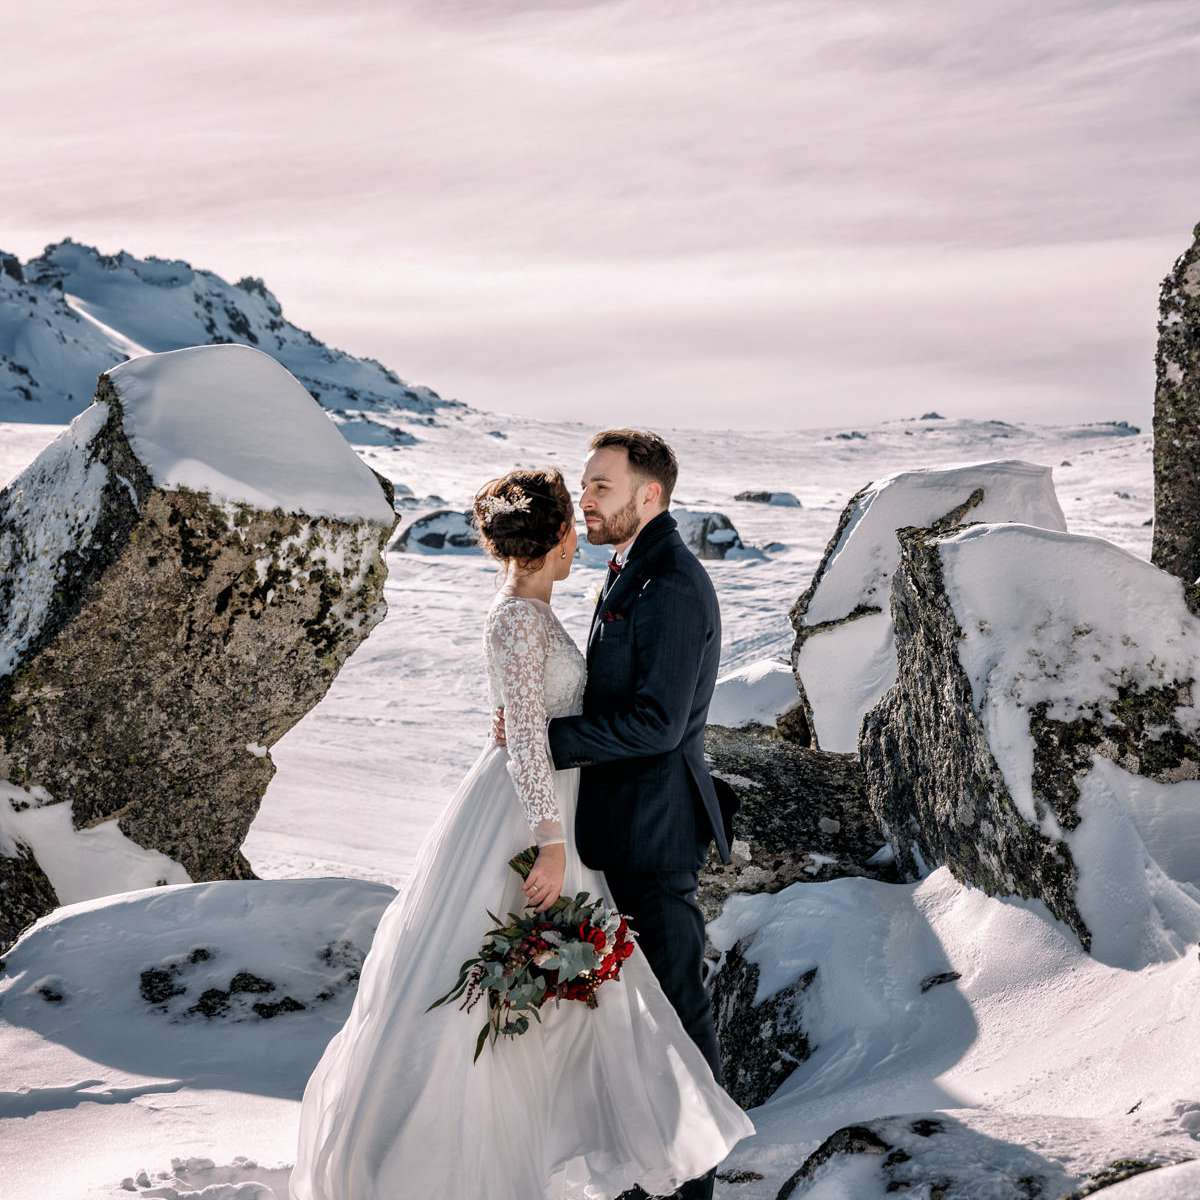 Bride and groom standing in a snowy mountainous landscape